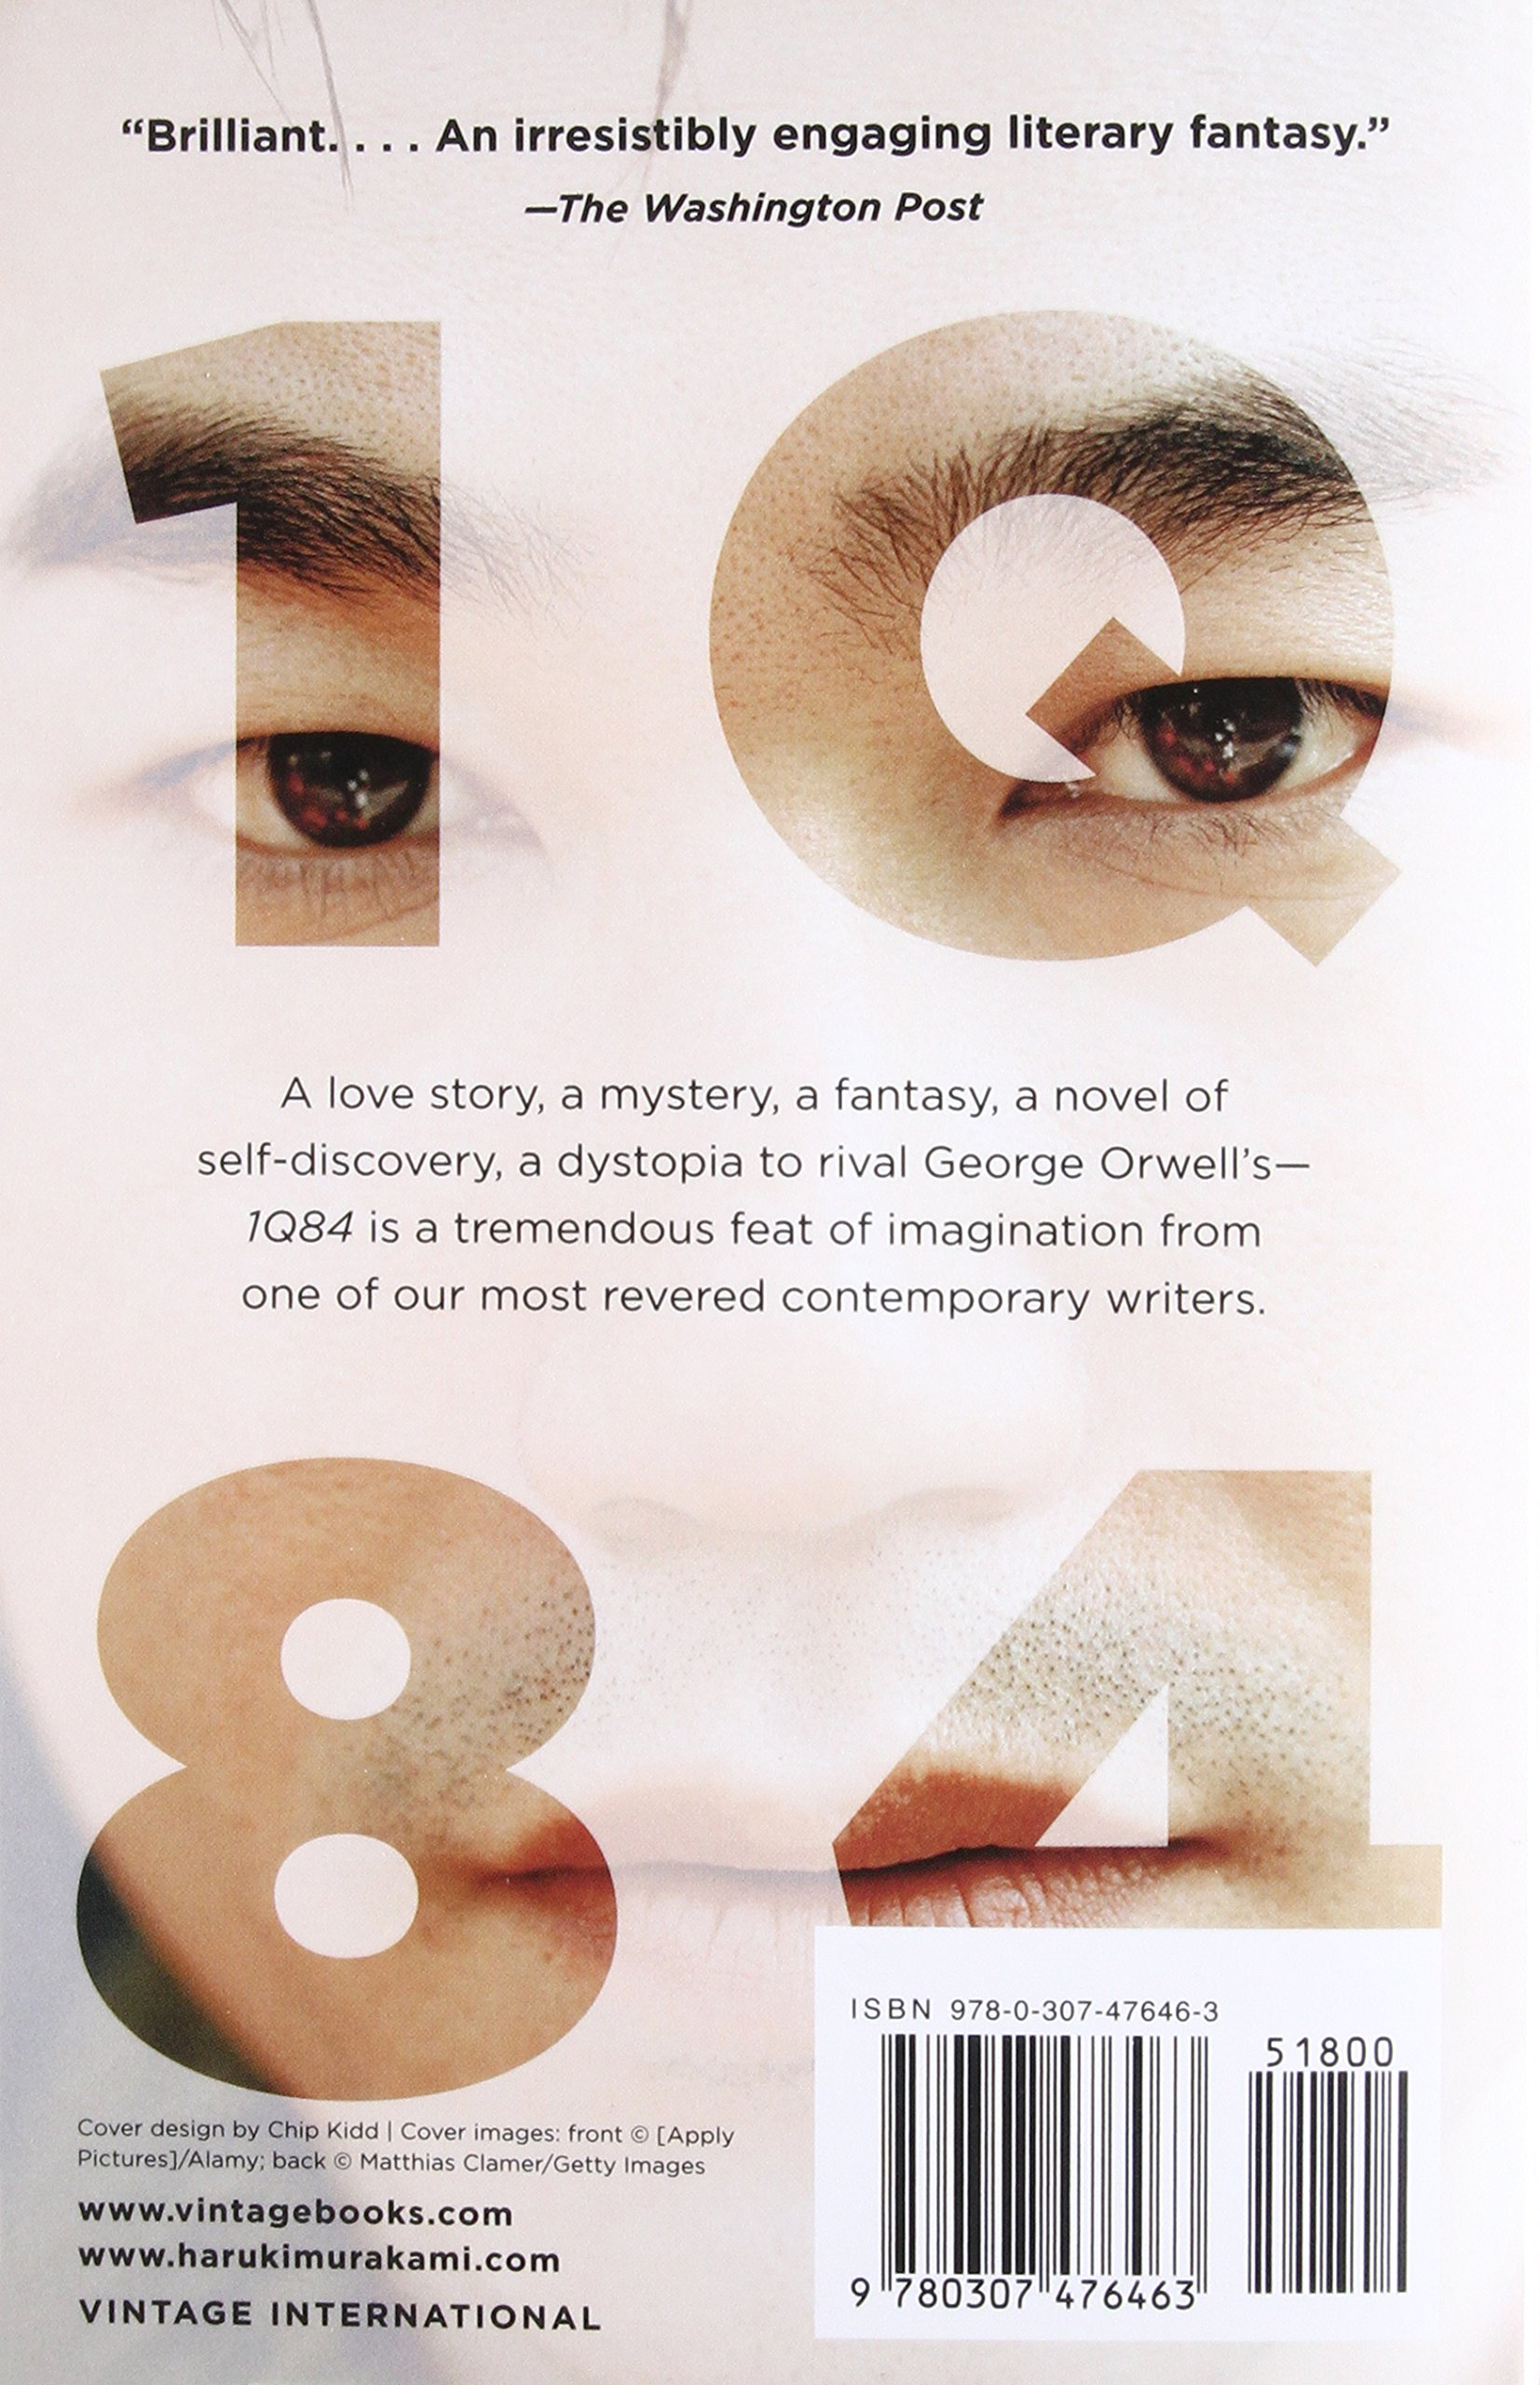 1q84 epub murakami download haruki